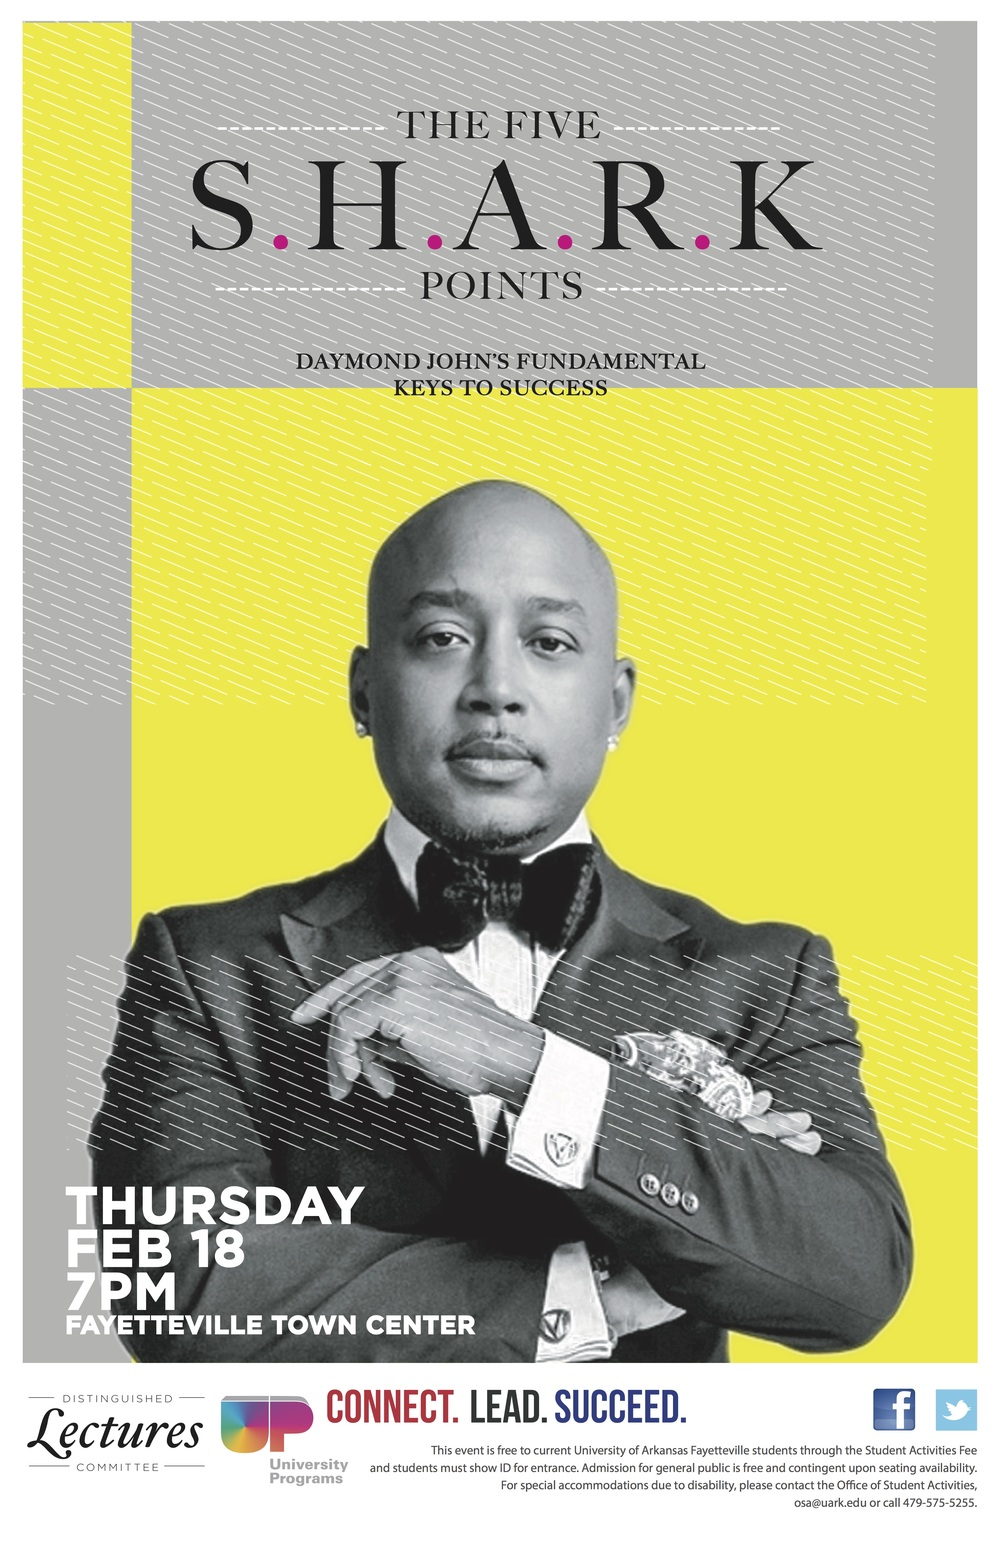 Daymond Johns copy.jpg